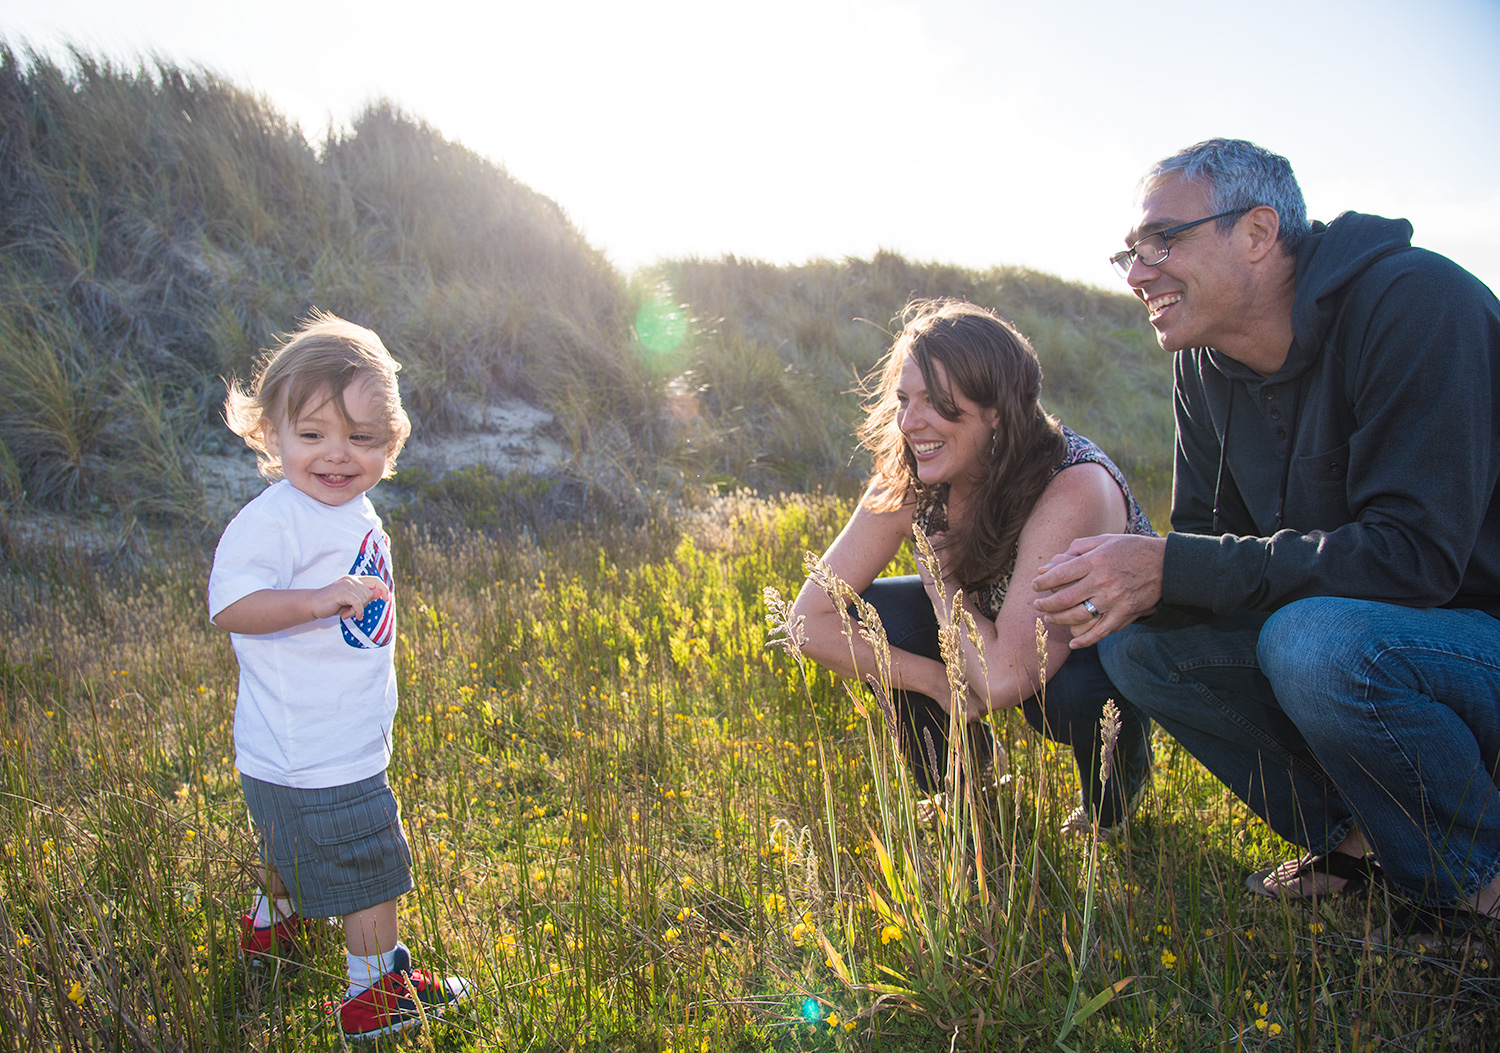 santa cruz family portrait locations beach dunes